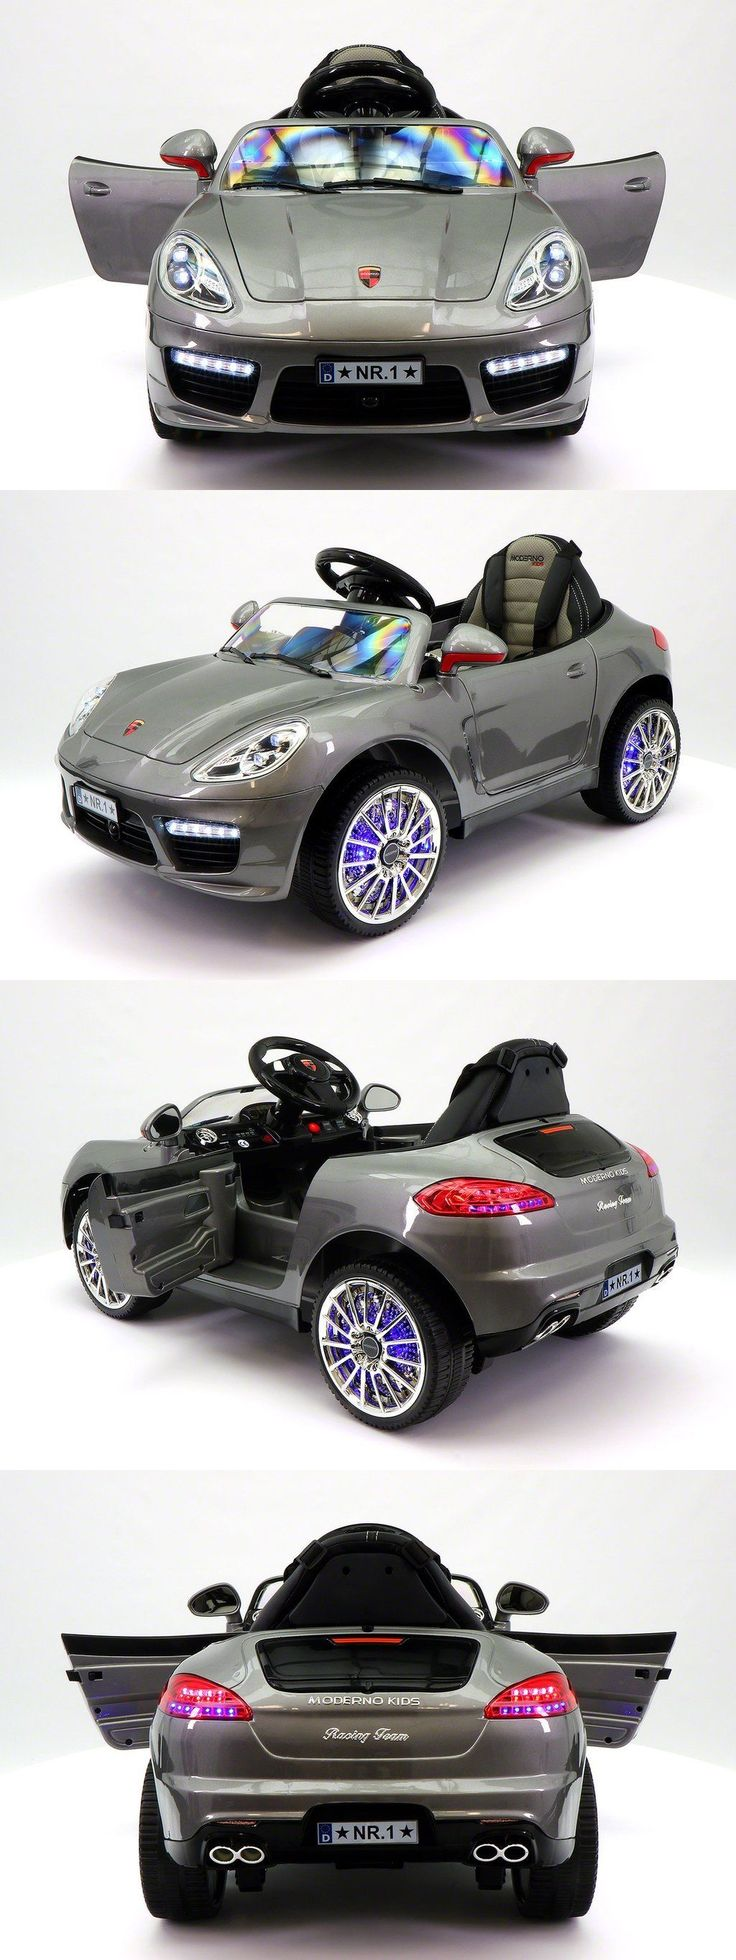 Ride On Toys and Accessories 145944: Electric Kids Ride On Toy Car 12V Power Wheels Mp3 + Rc Parental Remote Control -> BUY IT NOW ONLY: $299.99 on eBay!